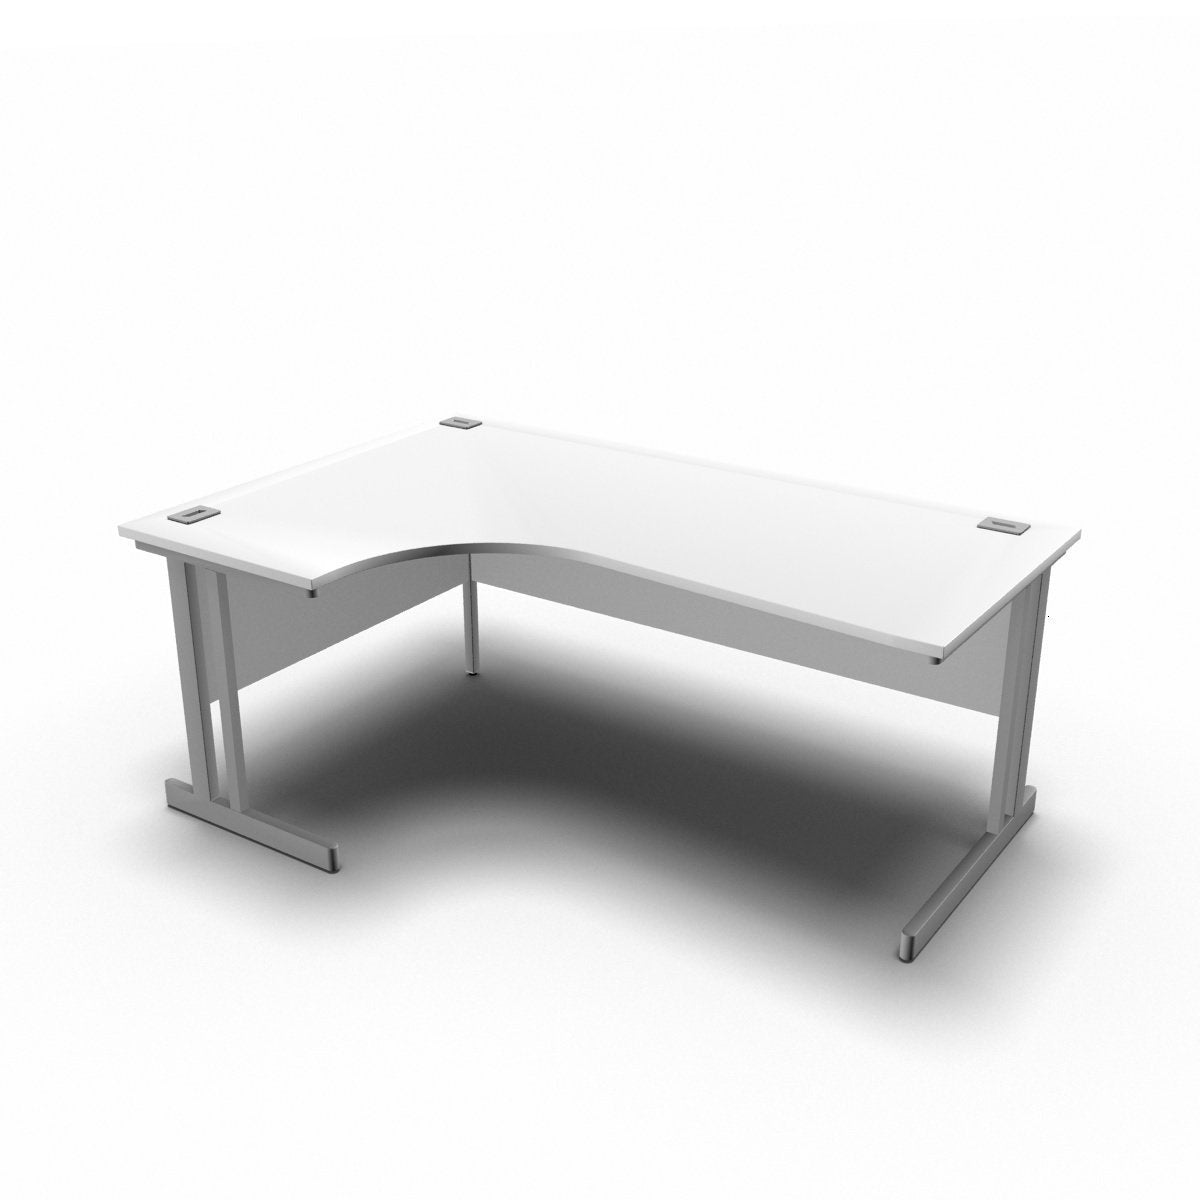 Desk 1800 x 1200 x 800 x 600mm / Left / White Synergy Crescent Desks